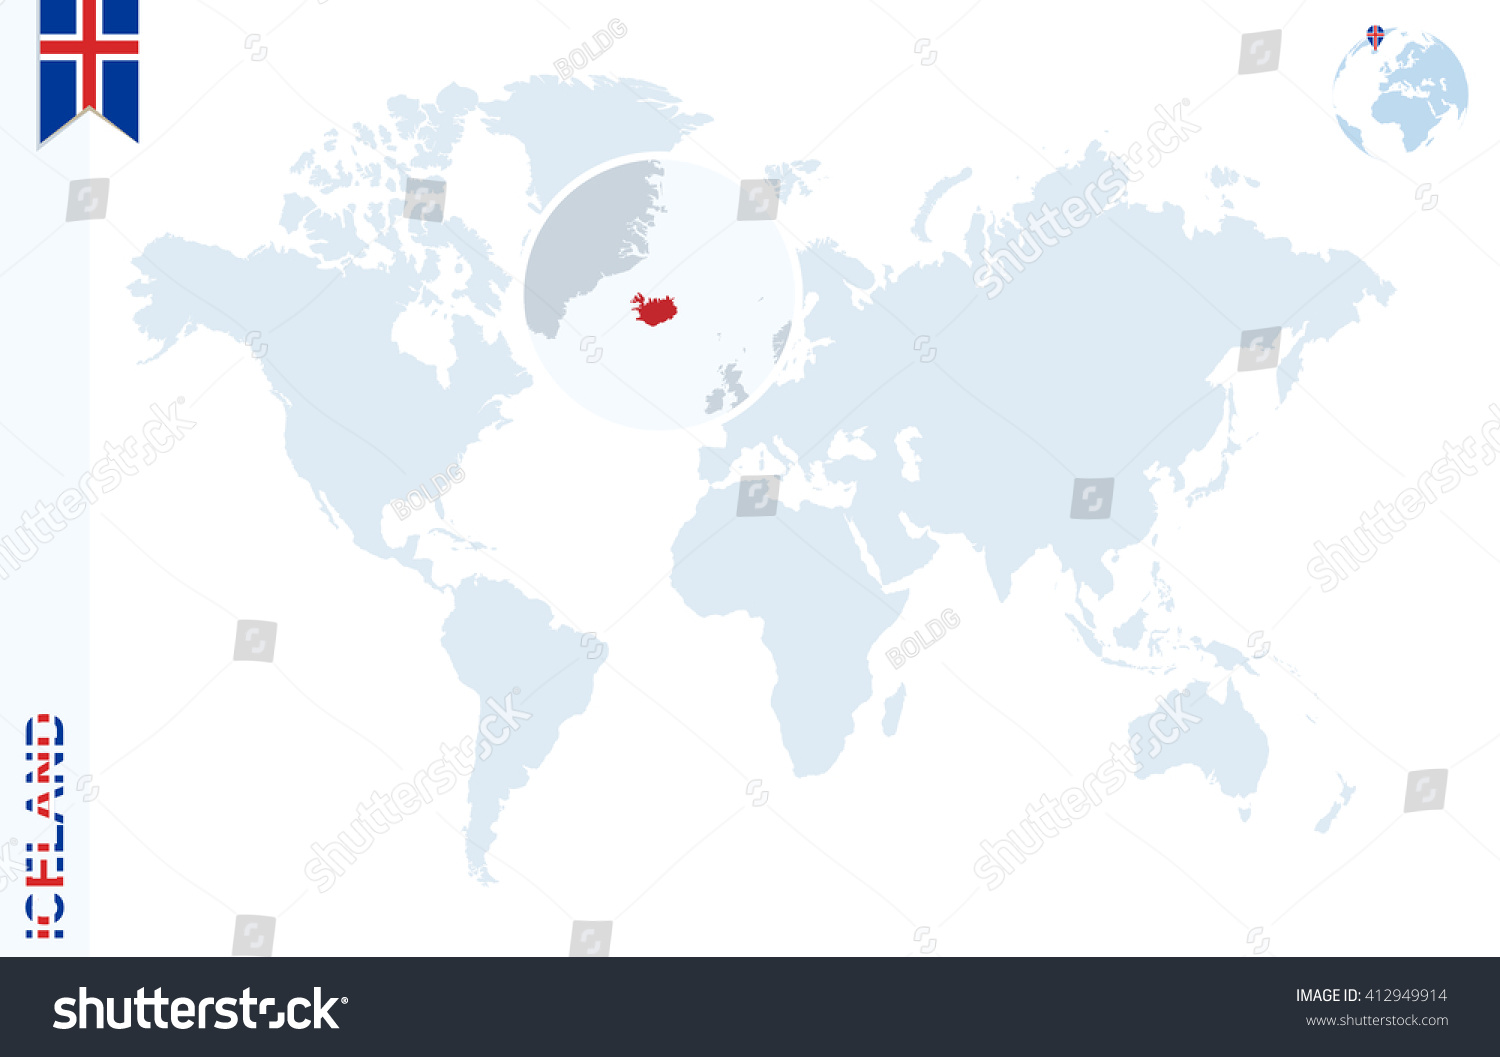 World map magnifying on iceland blue stock vector hd royalty free world map with magnifying on iceland blue earth globe with iceland flag pin zoom gumiabroncs